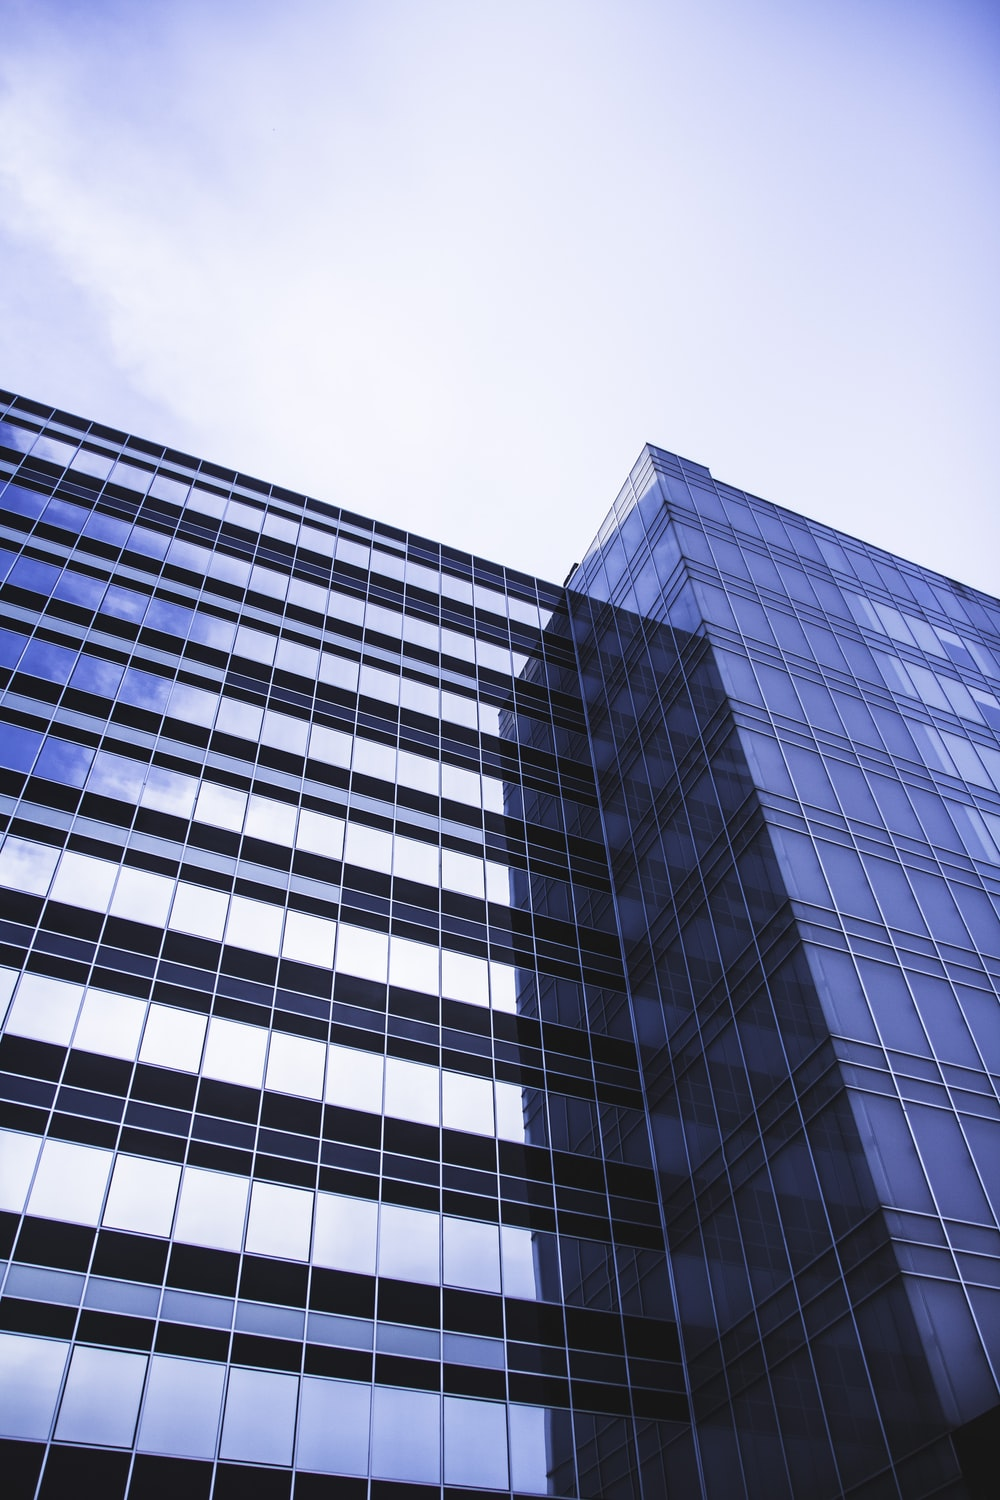 architectural photography of blue glass walled high-rise building under white and blue sky